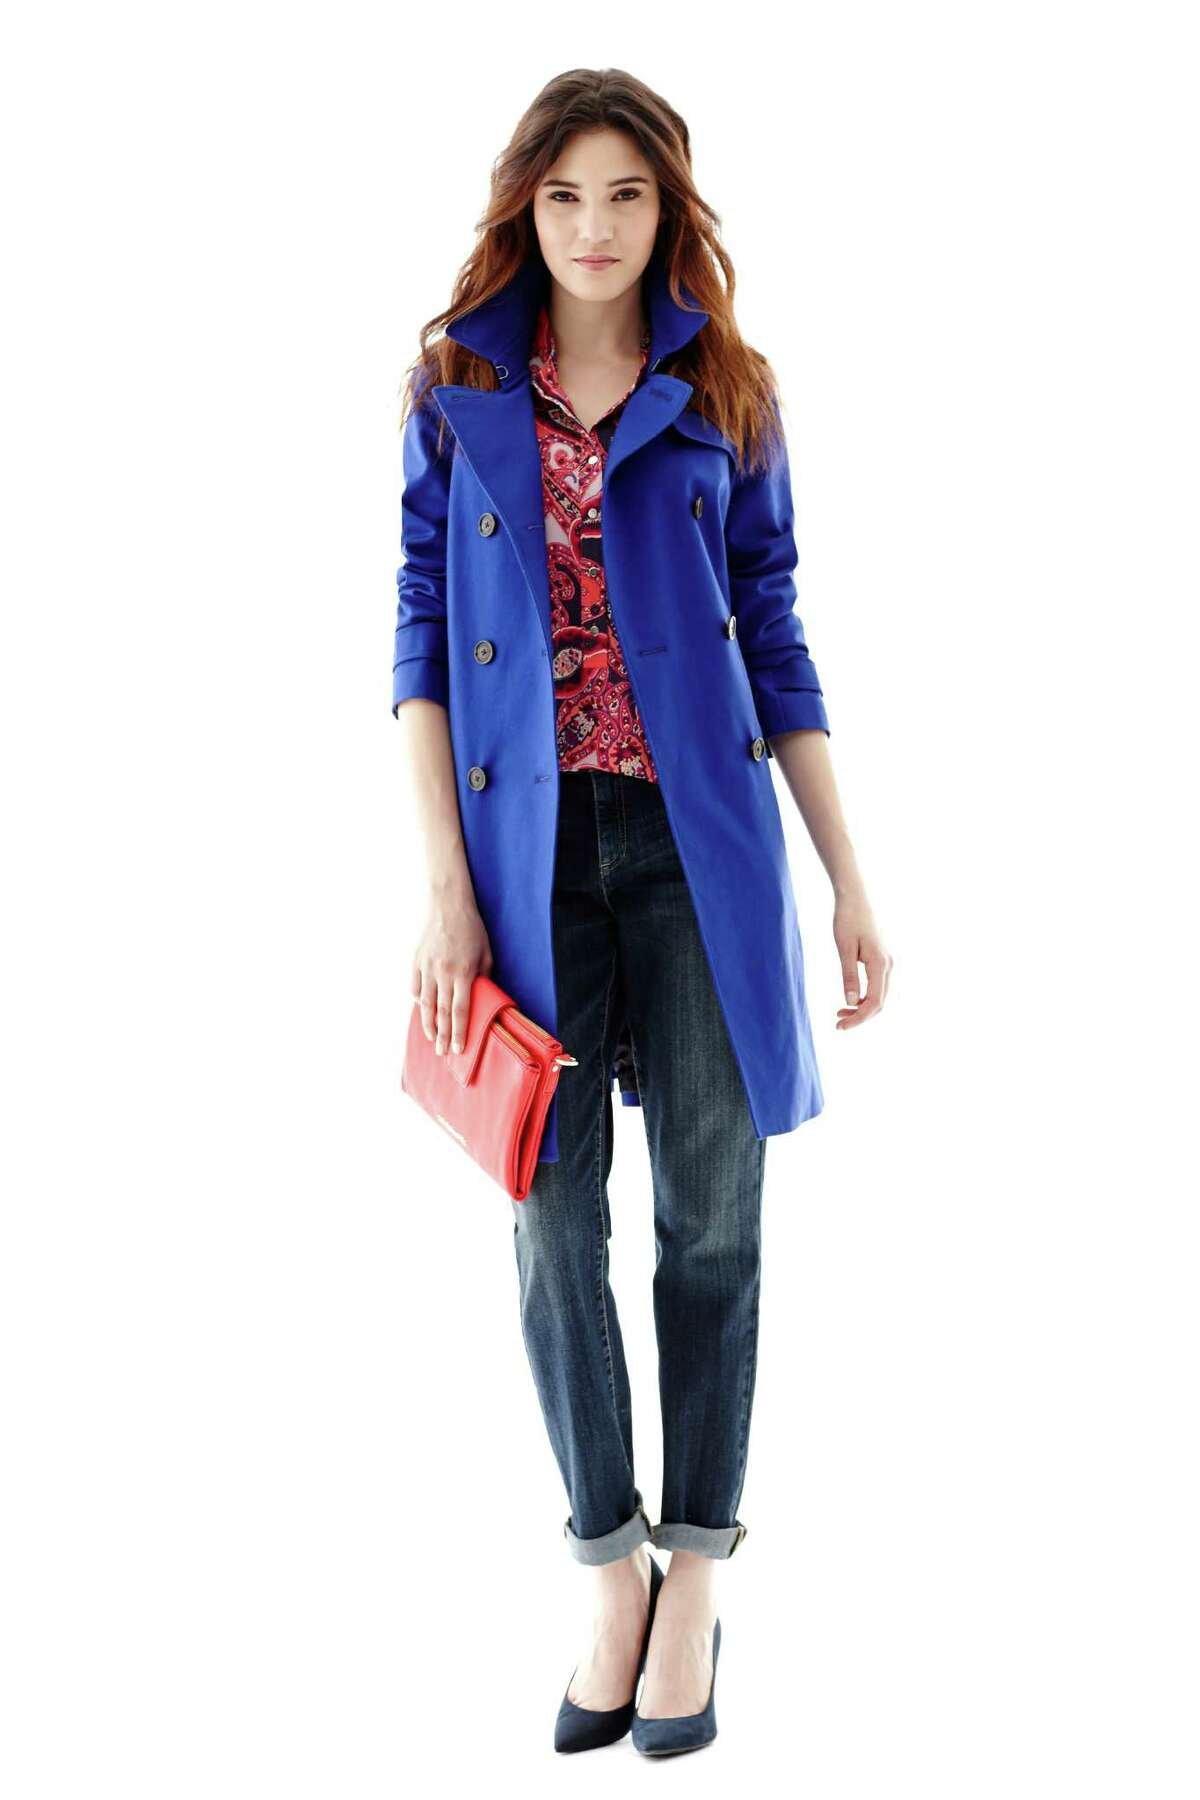 A bright cobalt blue trench coat is the perfect cover up for any fall ensemble. This one is by Liz Claiborne, $150, from JCPenney.